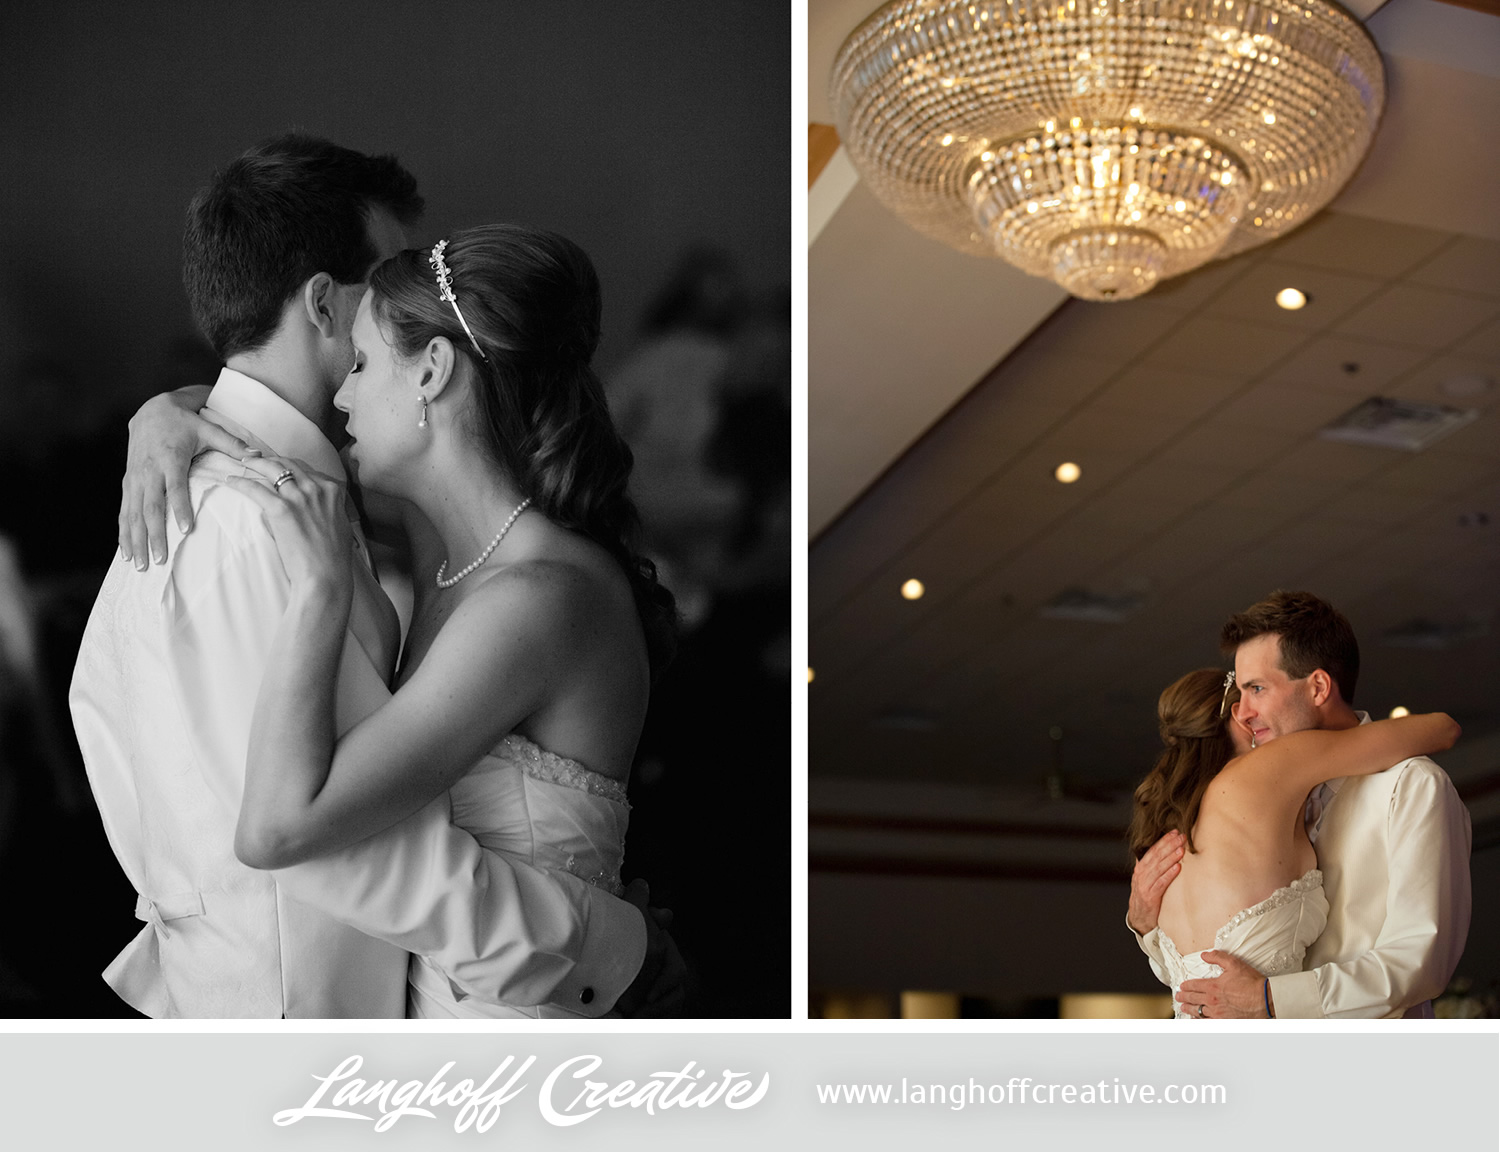 PlainfieldWedding-2013-LanghoffCreative-MattErin-25-photo.jpg